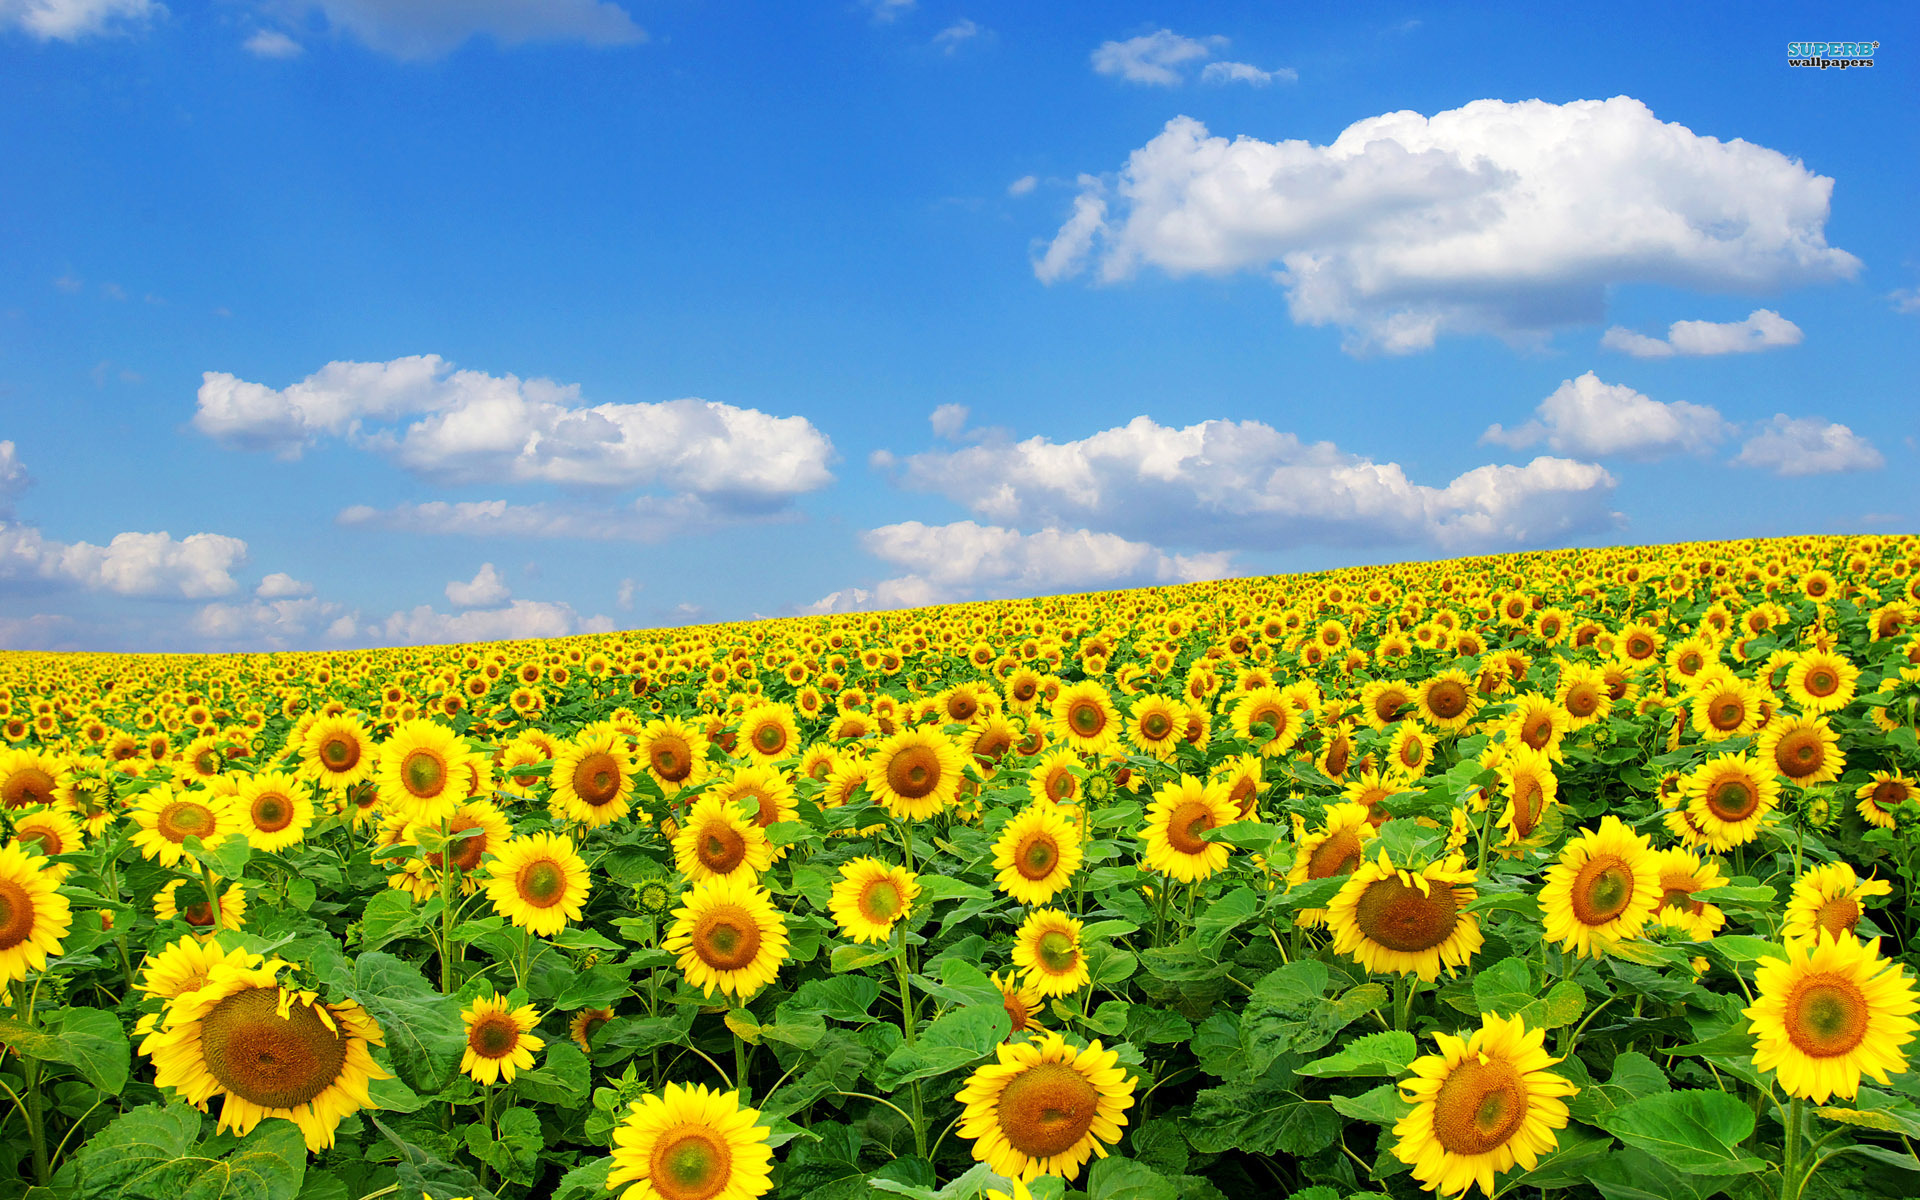 Field of sunflowers clipart.